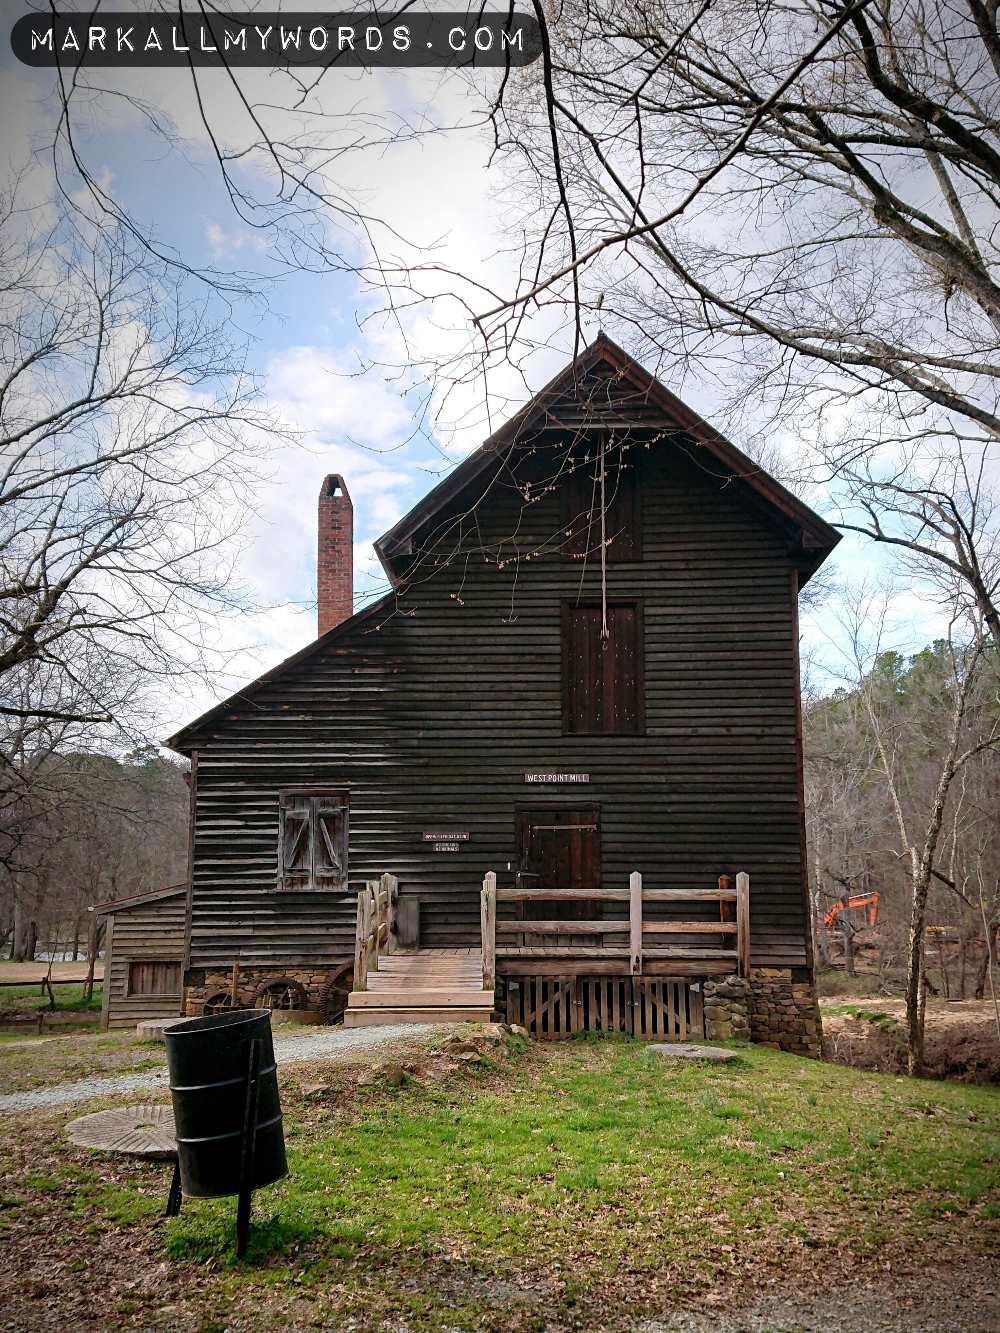 West Point Mill, looking like a schoolhouse